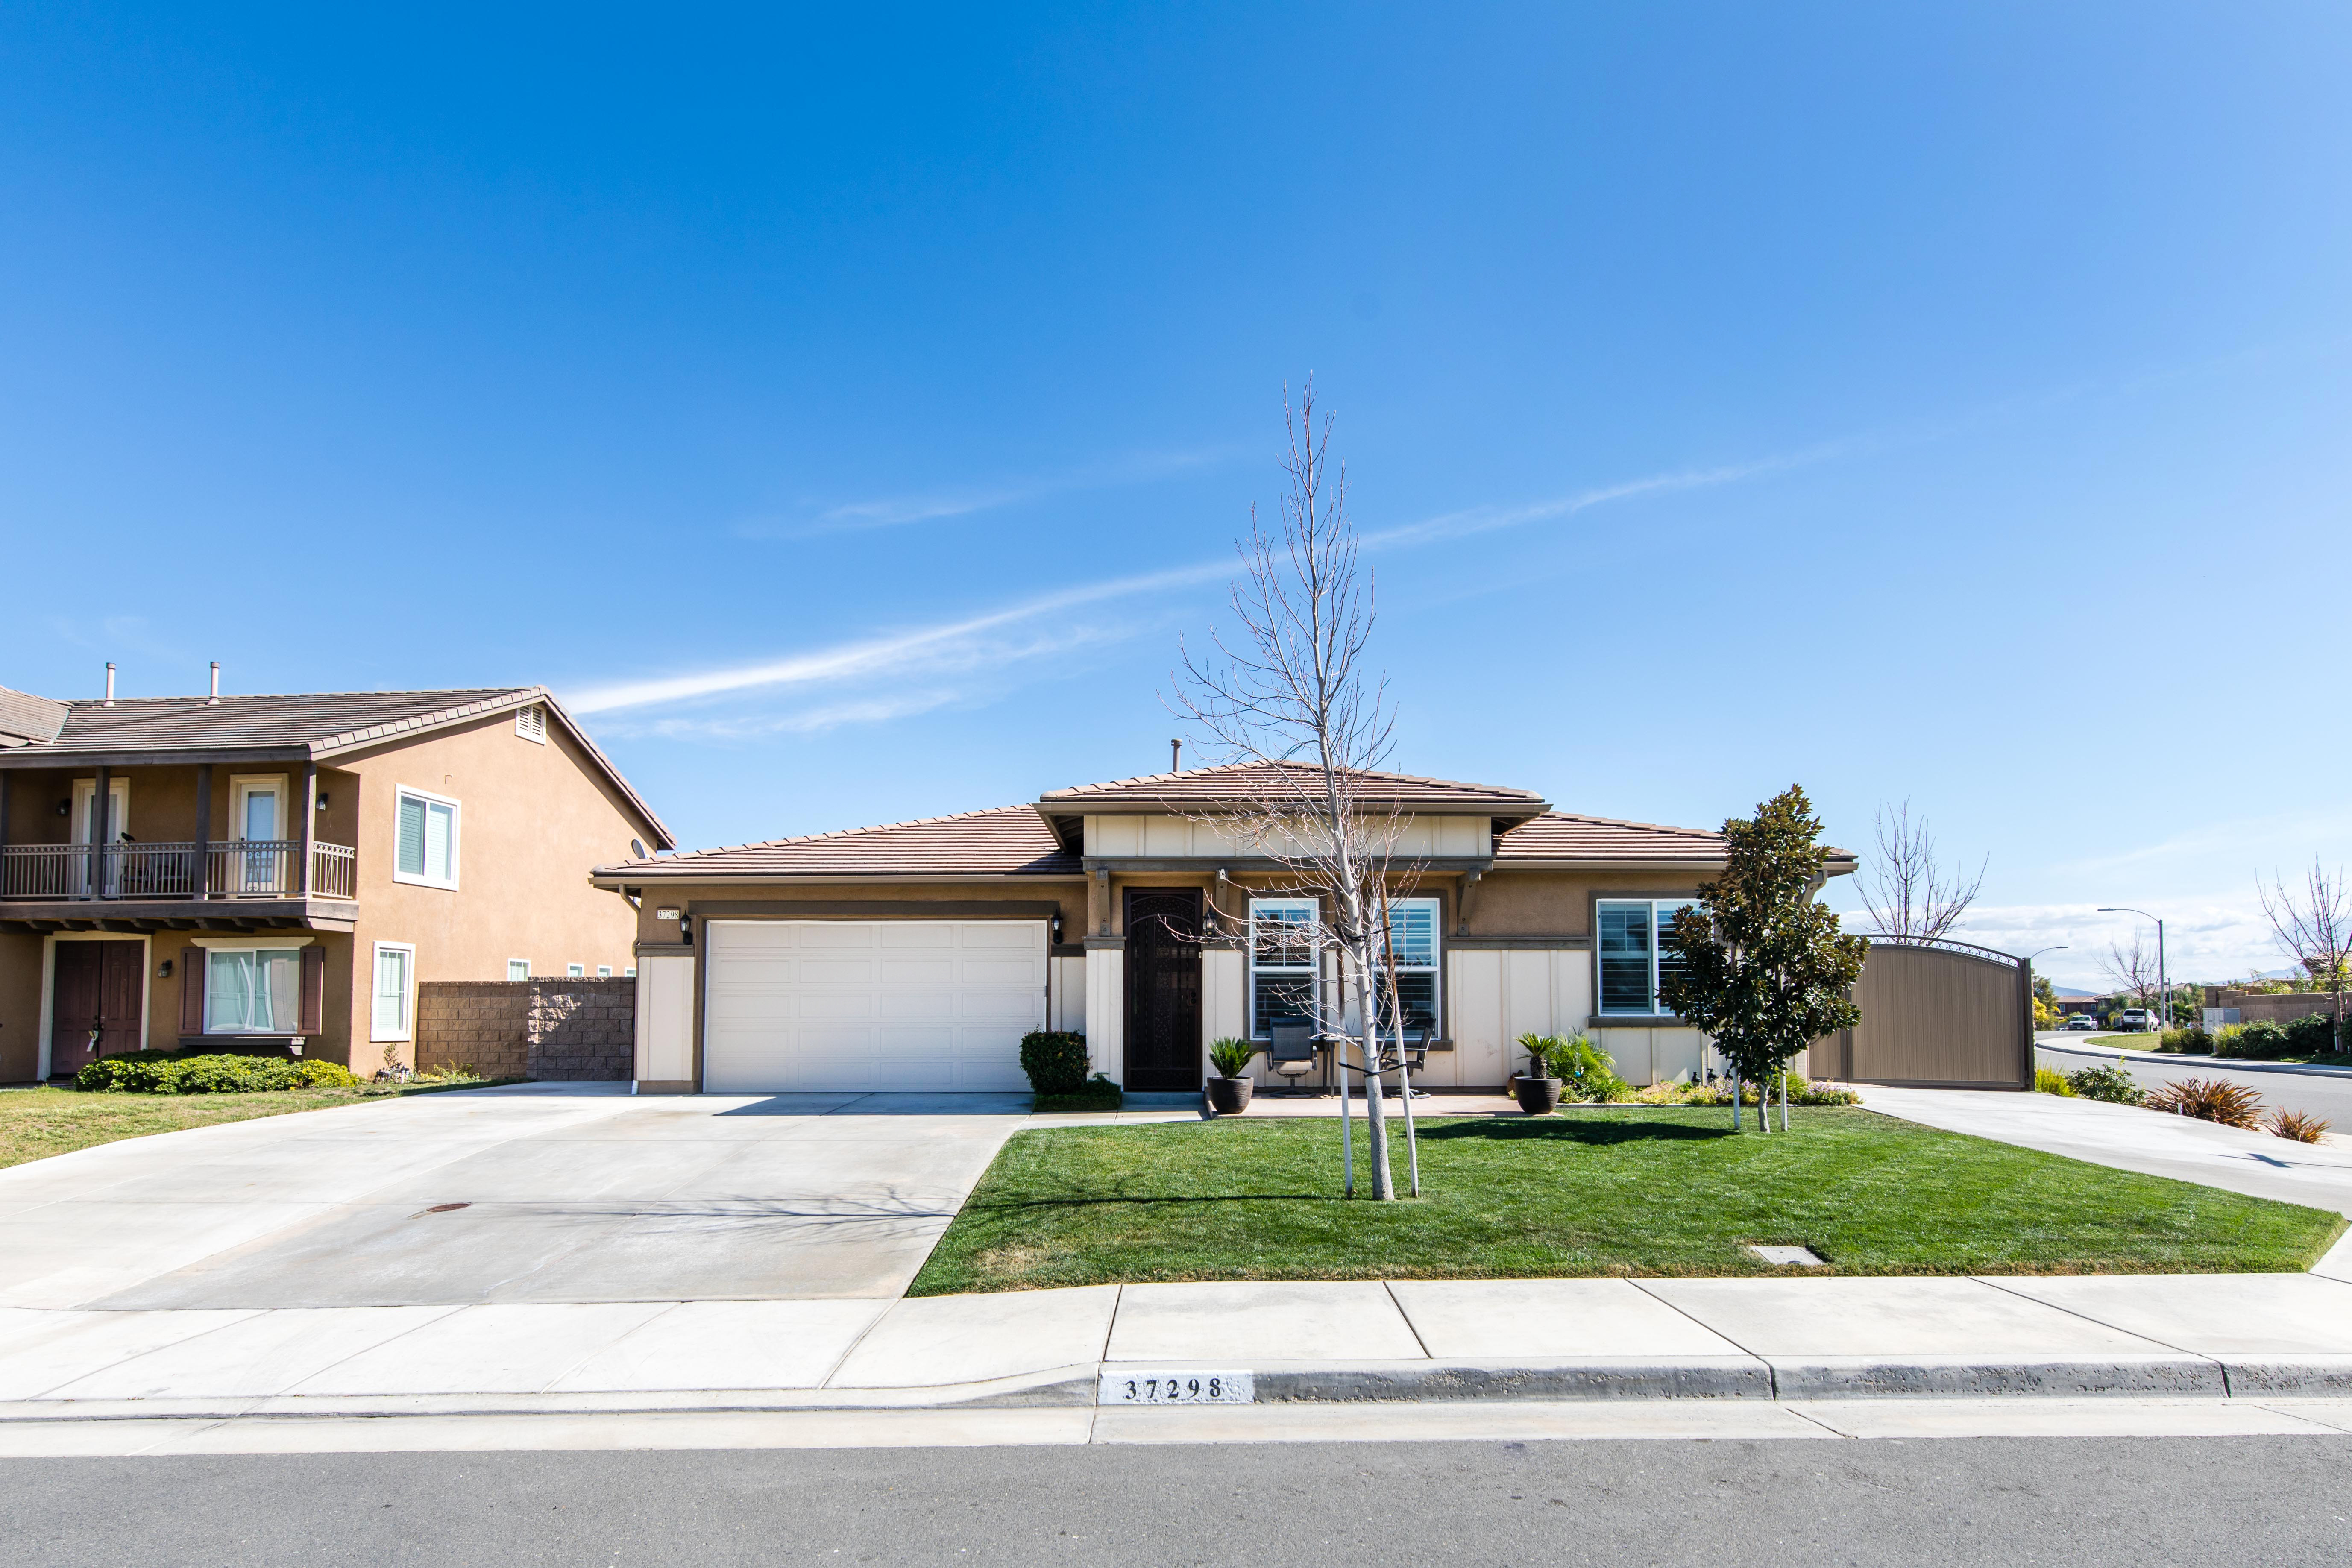 37298 Harvest Dr-ext-7